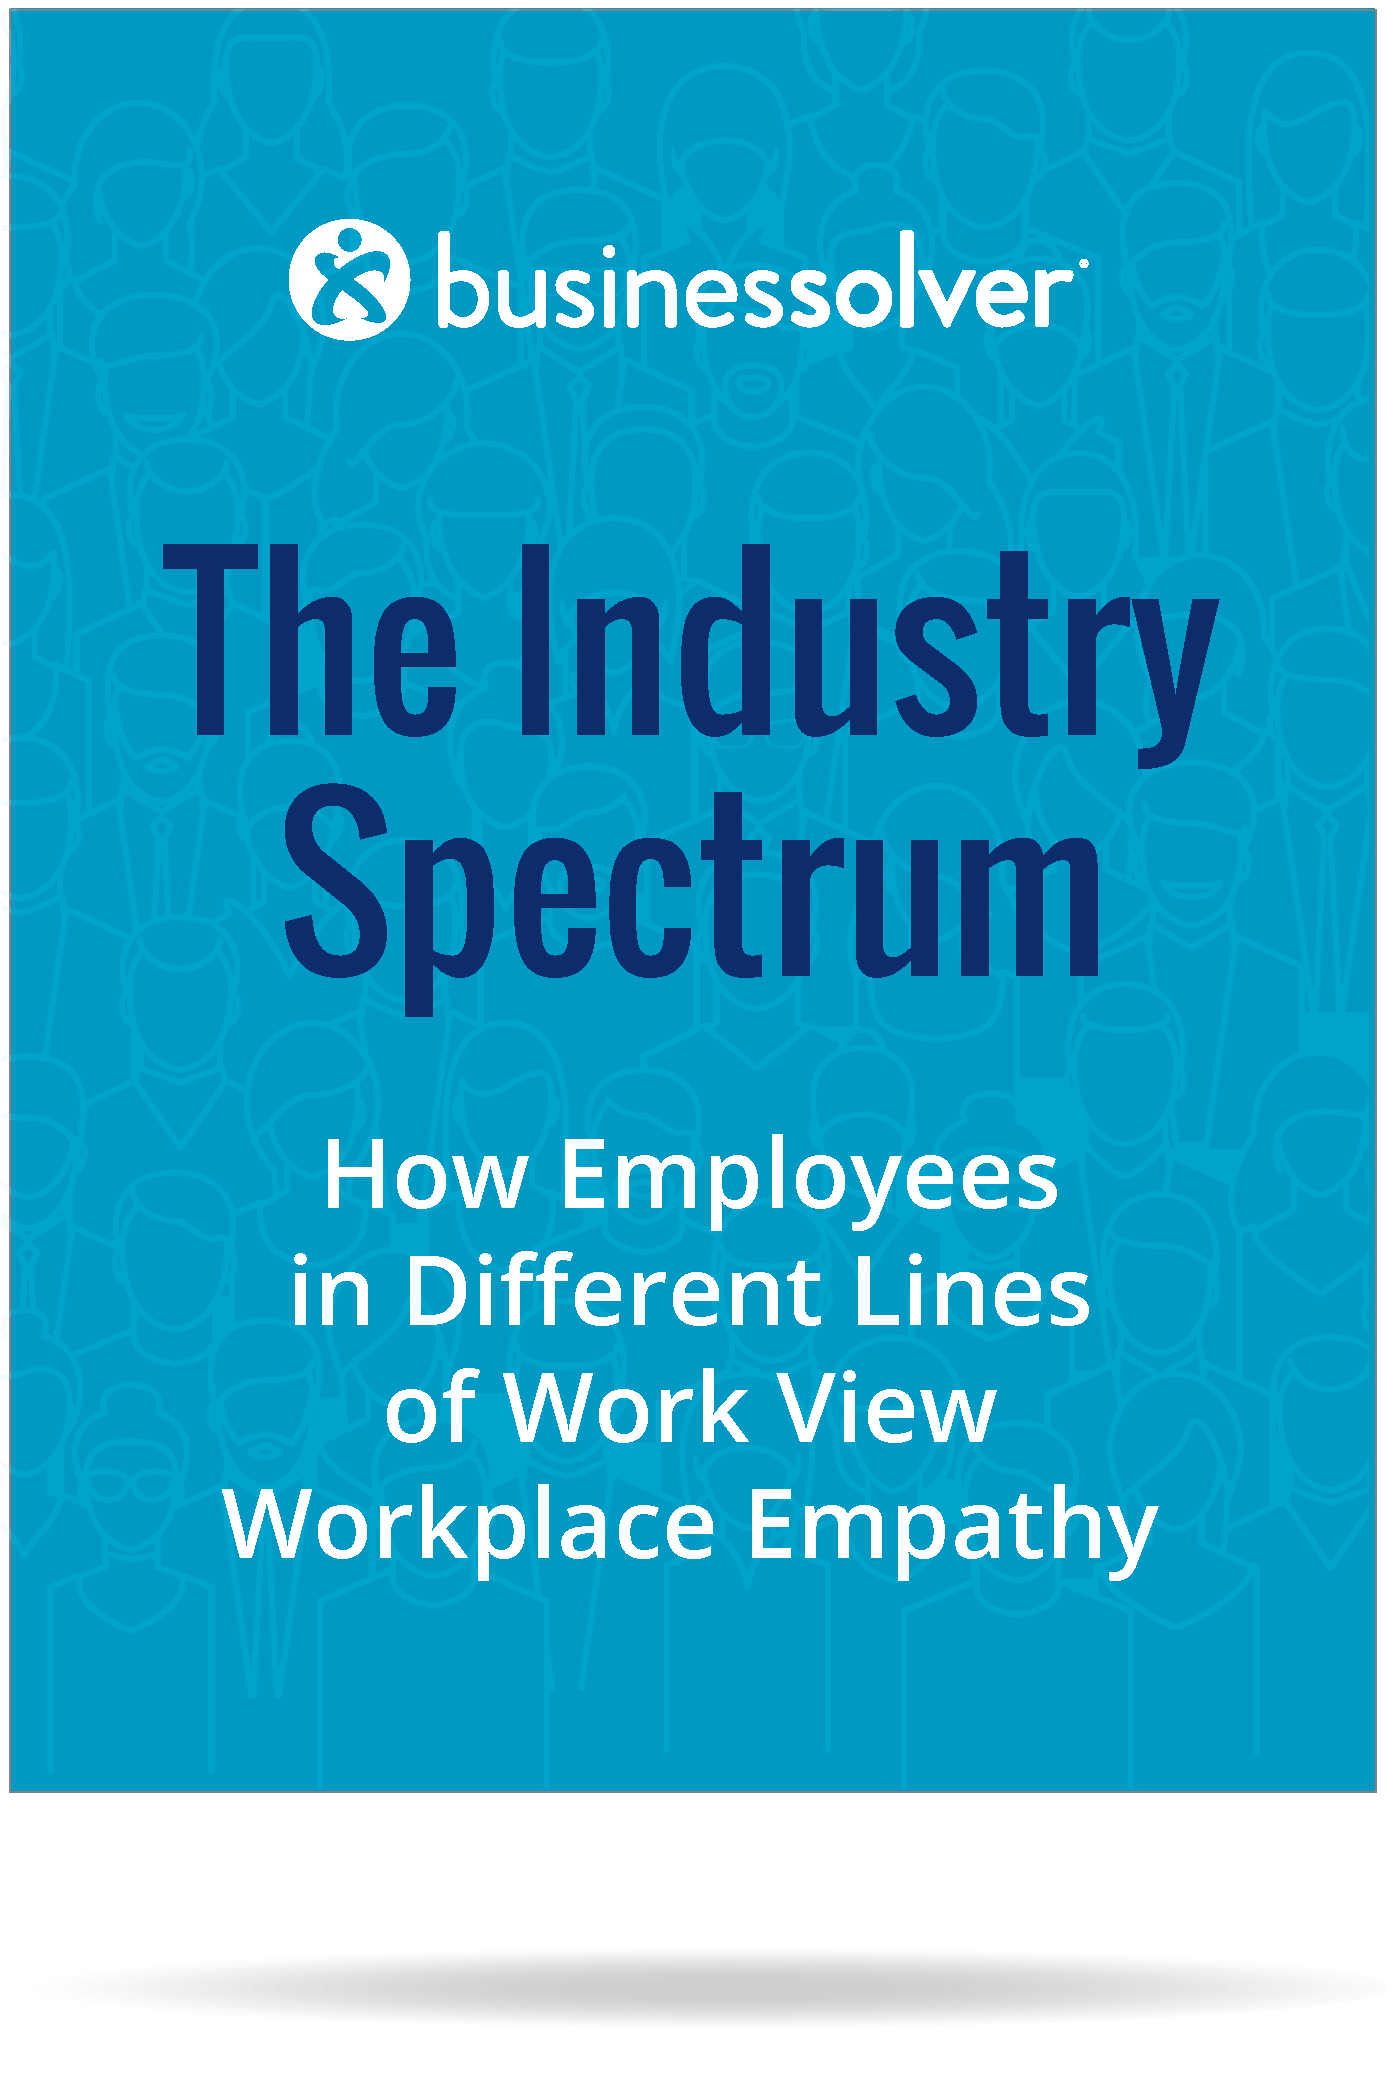 The Industry Spectrum: How Employees View Workplace Empathy by Industry